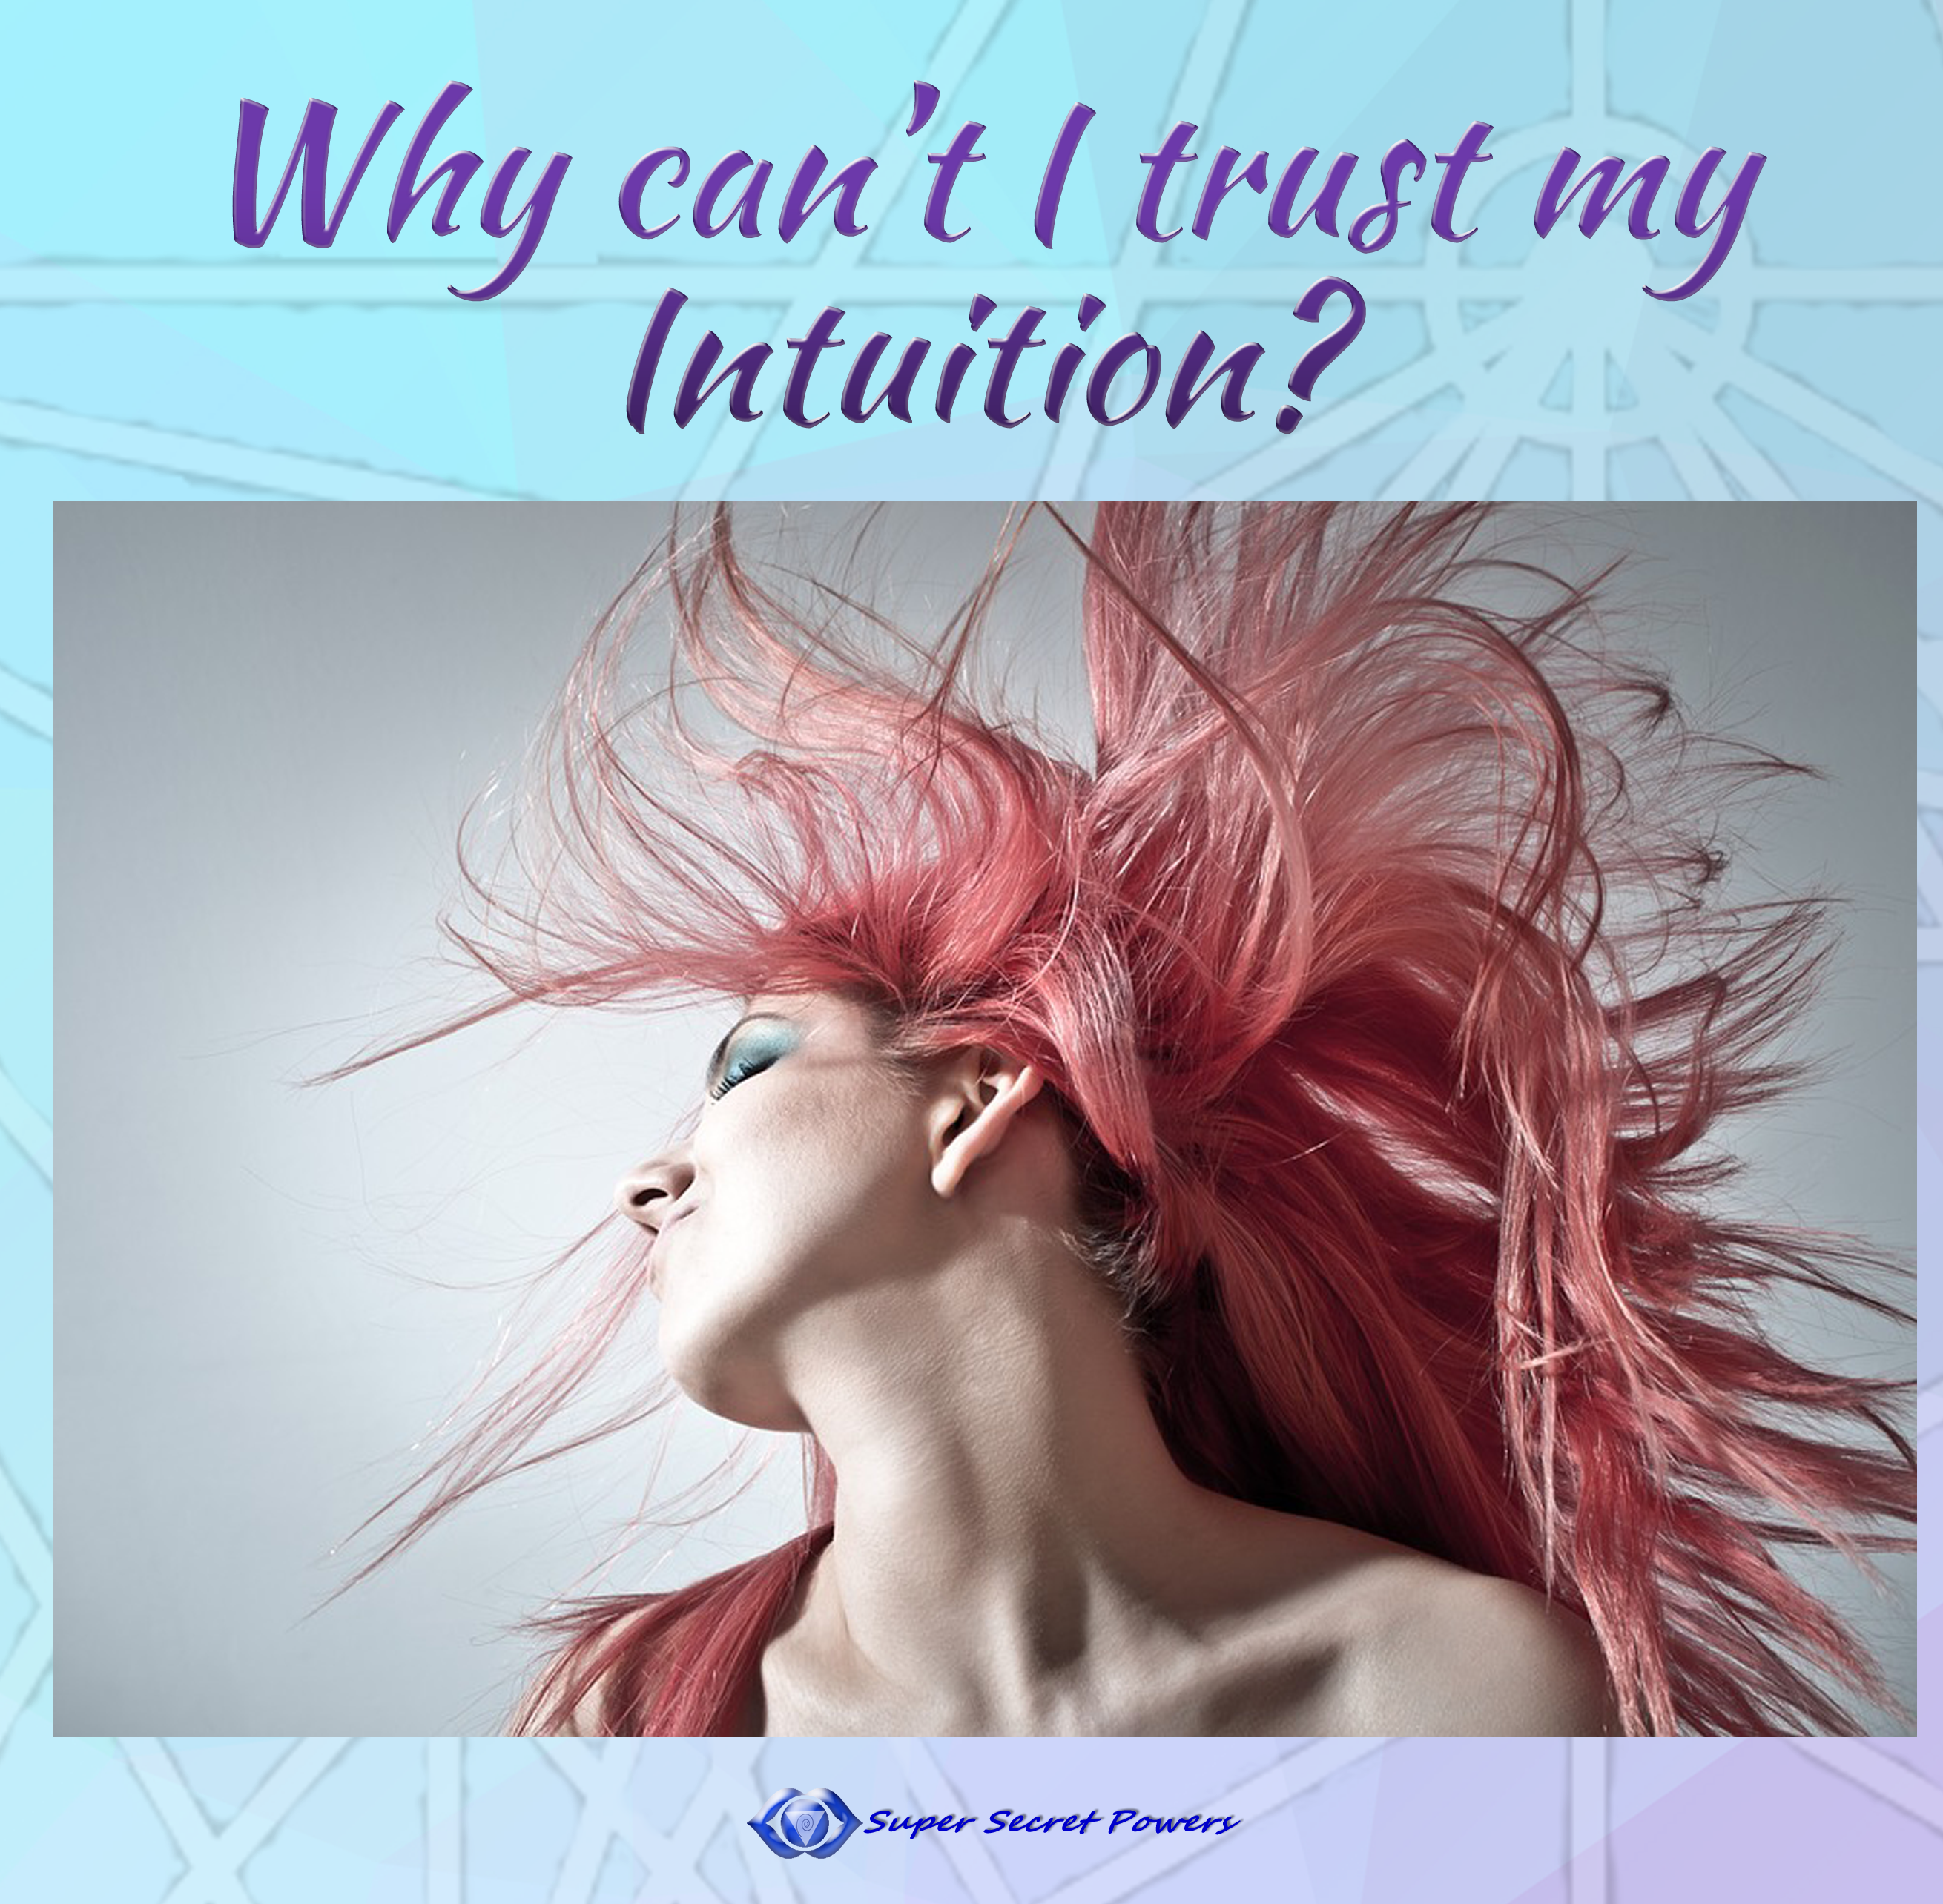 Why can't I trust my intuition??